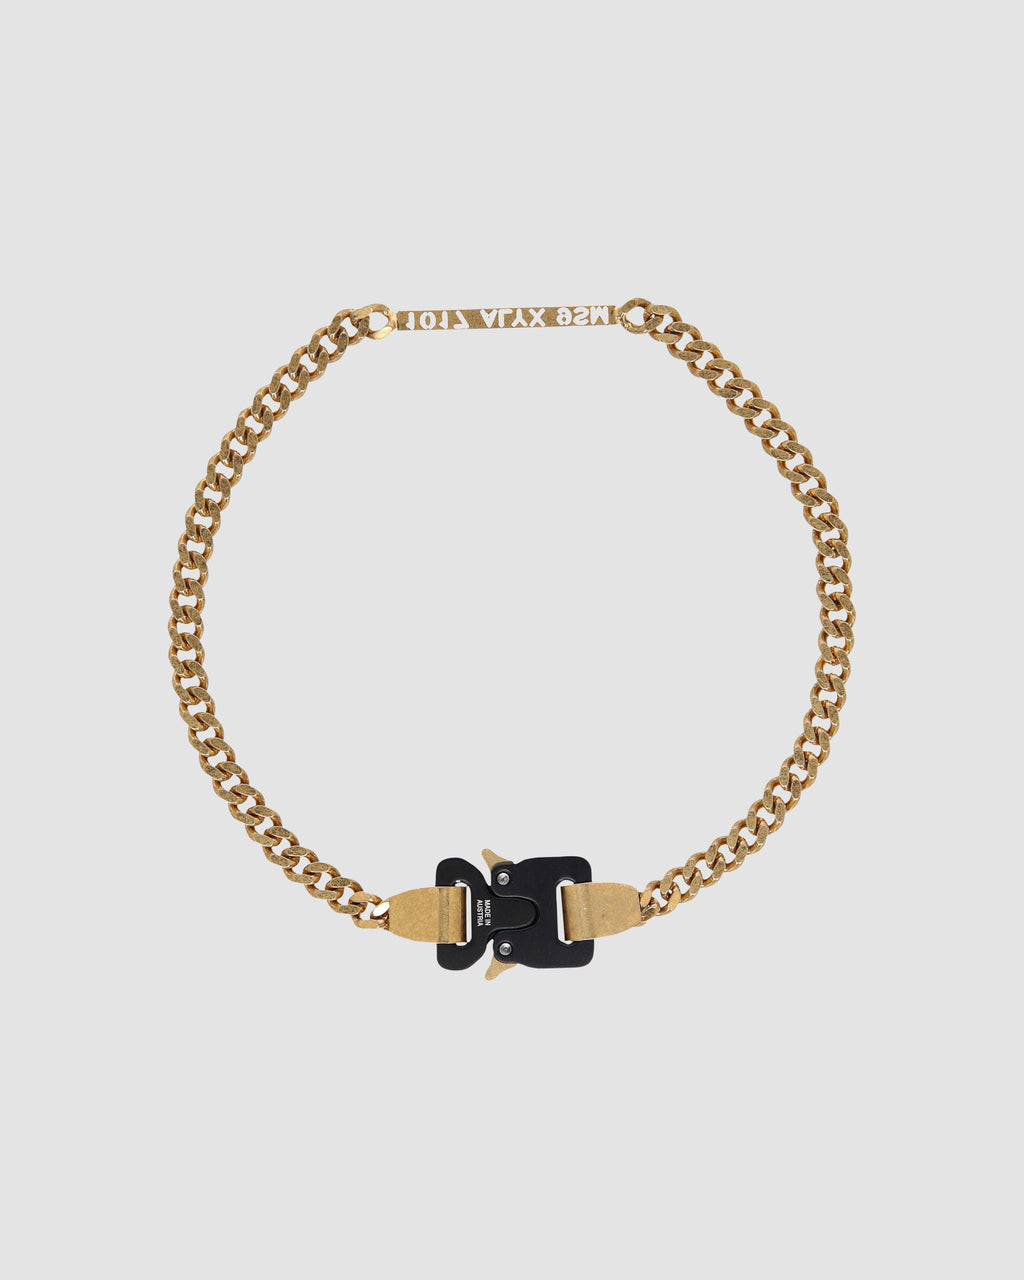 1017 ALYX 9SM | 1017 ALYX 9SM BUCKLE NECKLACE | Jewellery | Accessories, GOLD, Google Shopping, Jewellery, jewelry, Man, S20, S20 Drop II, UNISEX, Woman